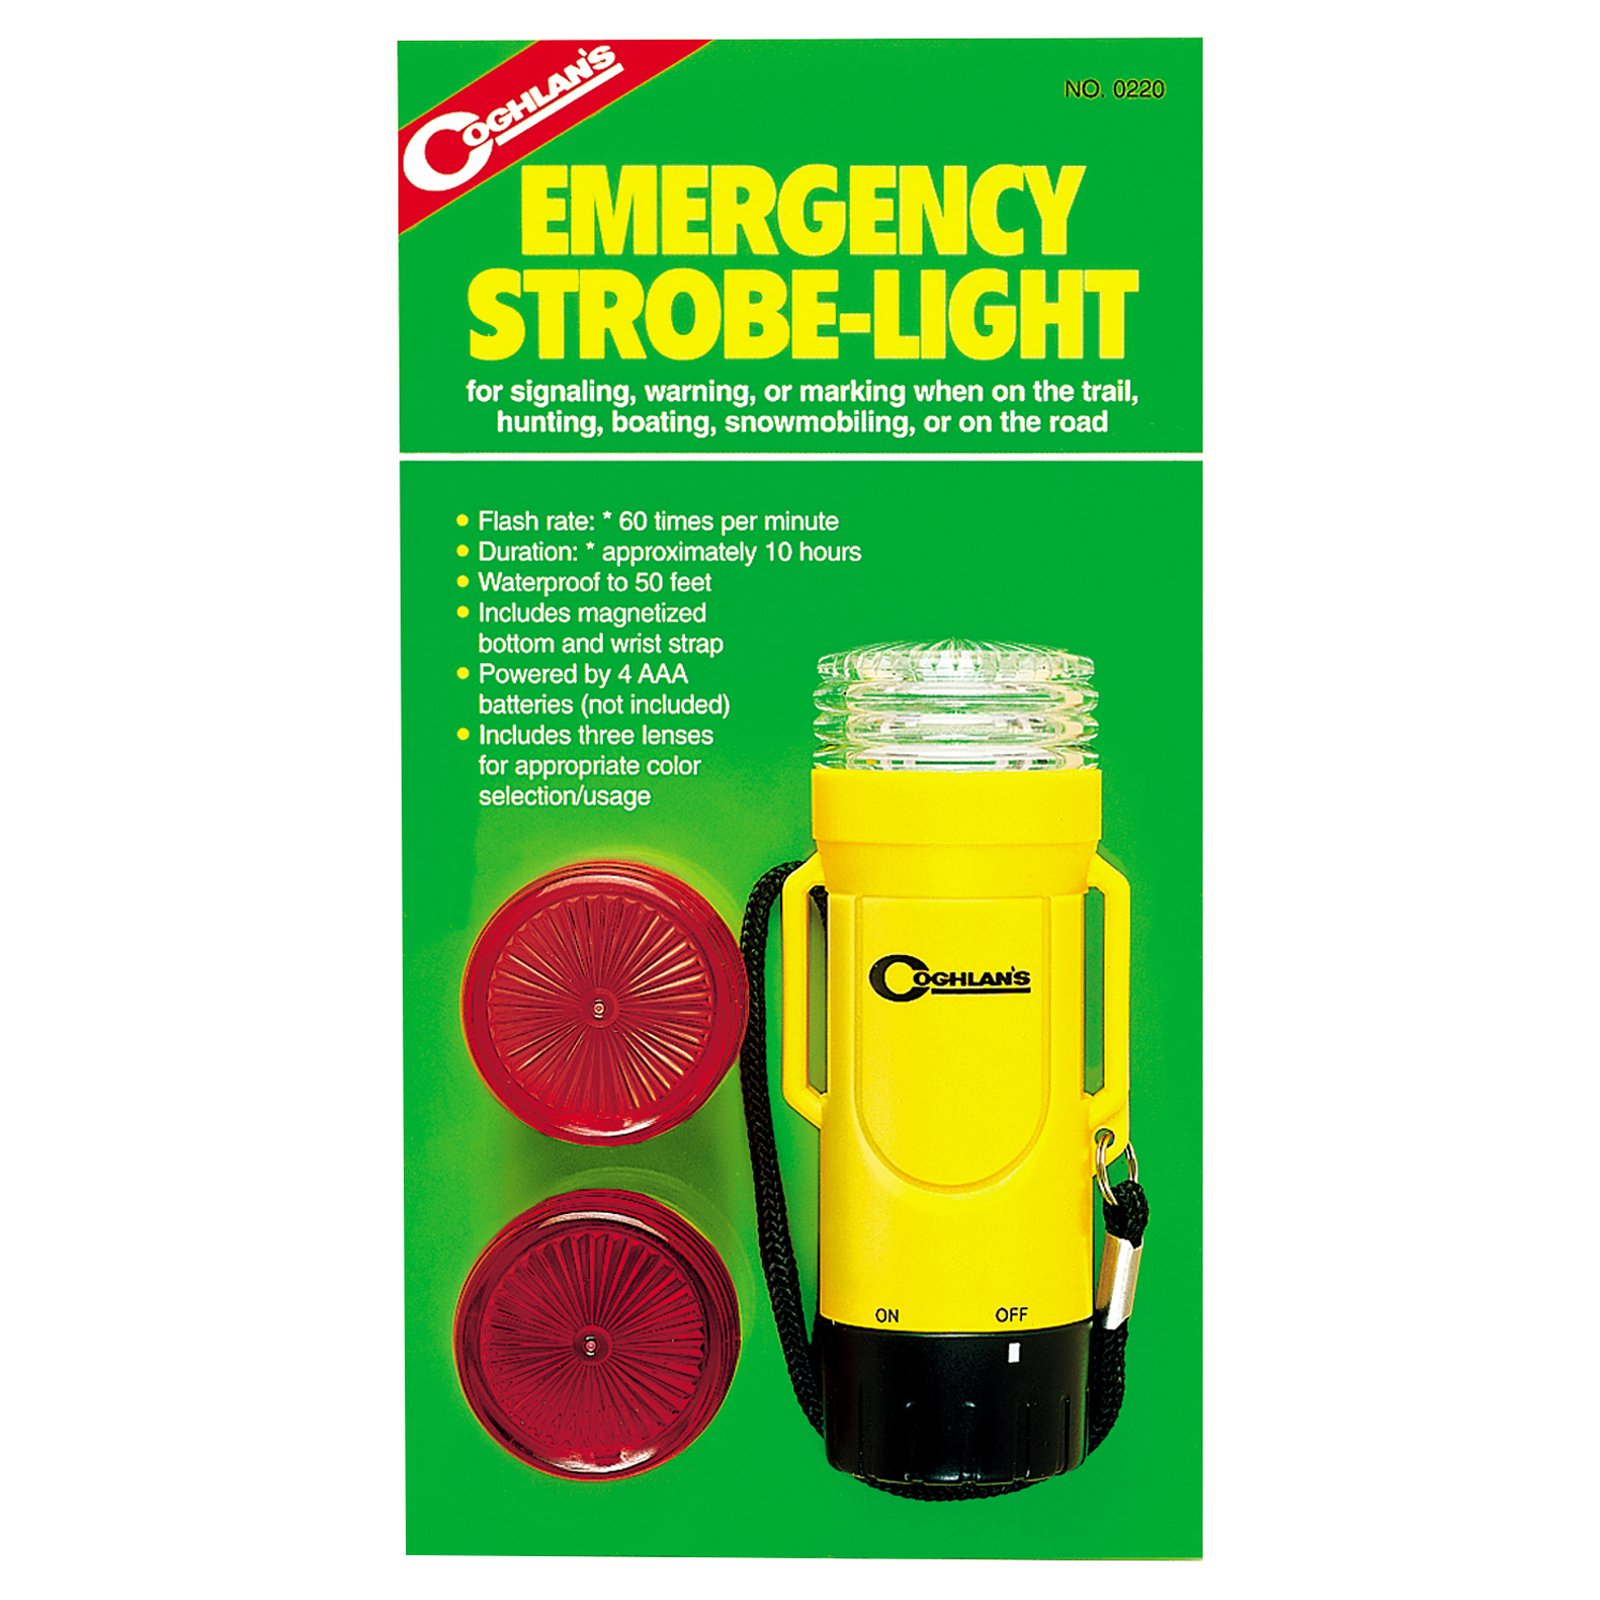 Coghlans Emergency Strobe-Light 0220